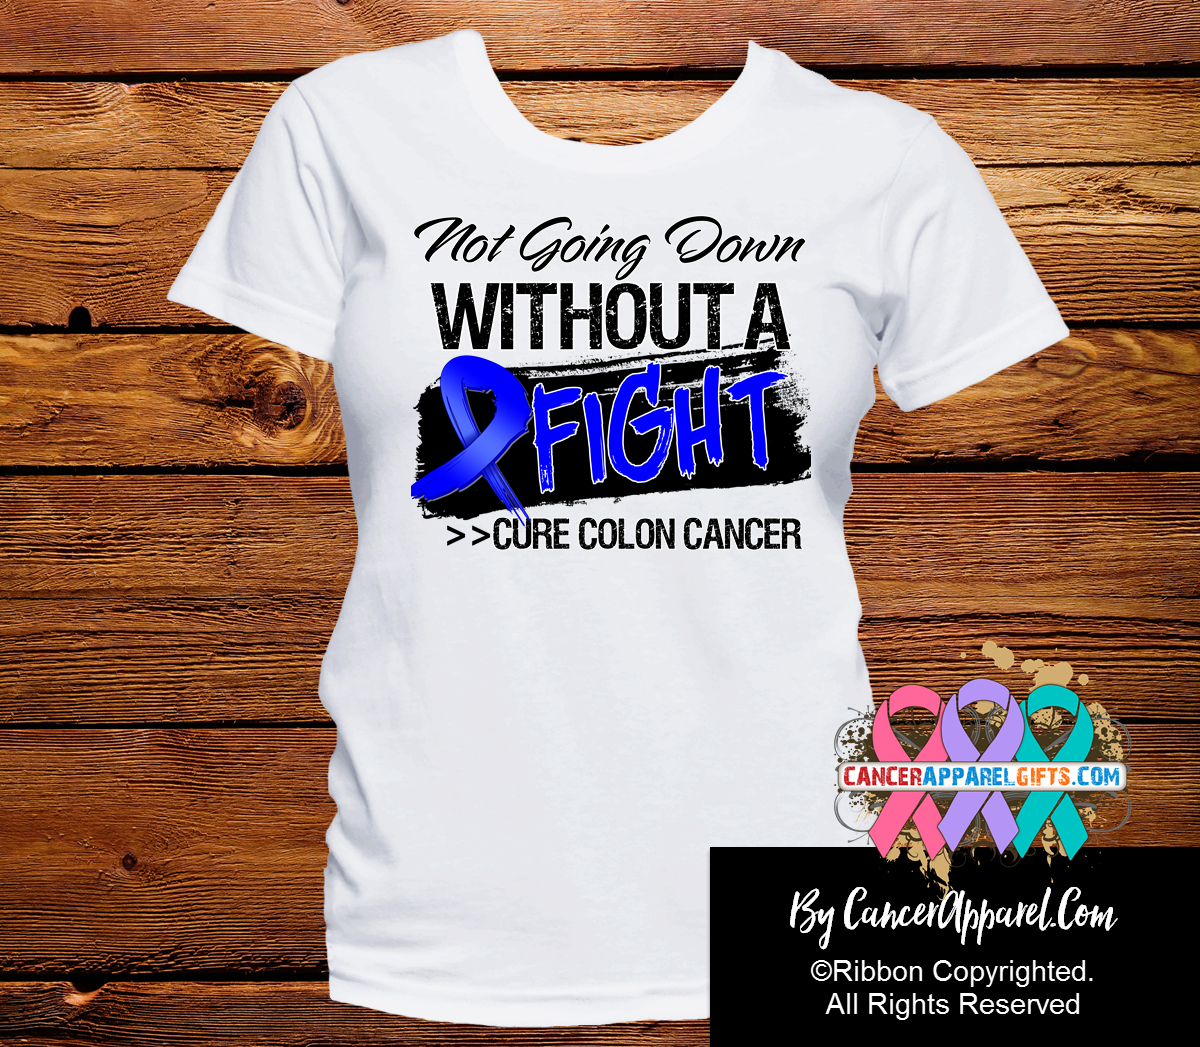 Colon Cancer Not Going Down Without a Fight Shirts - Cancer Apparel and Gifts